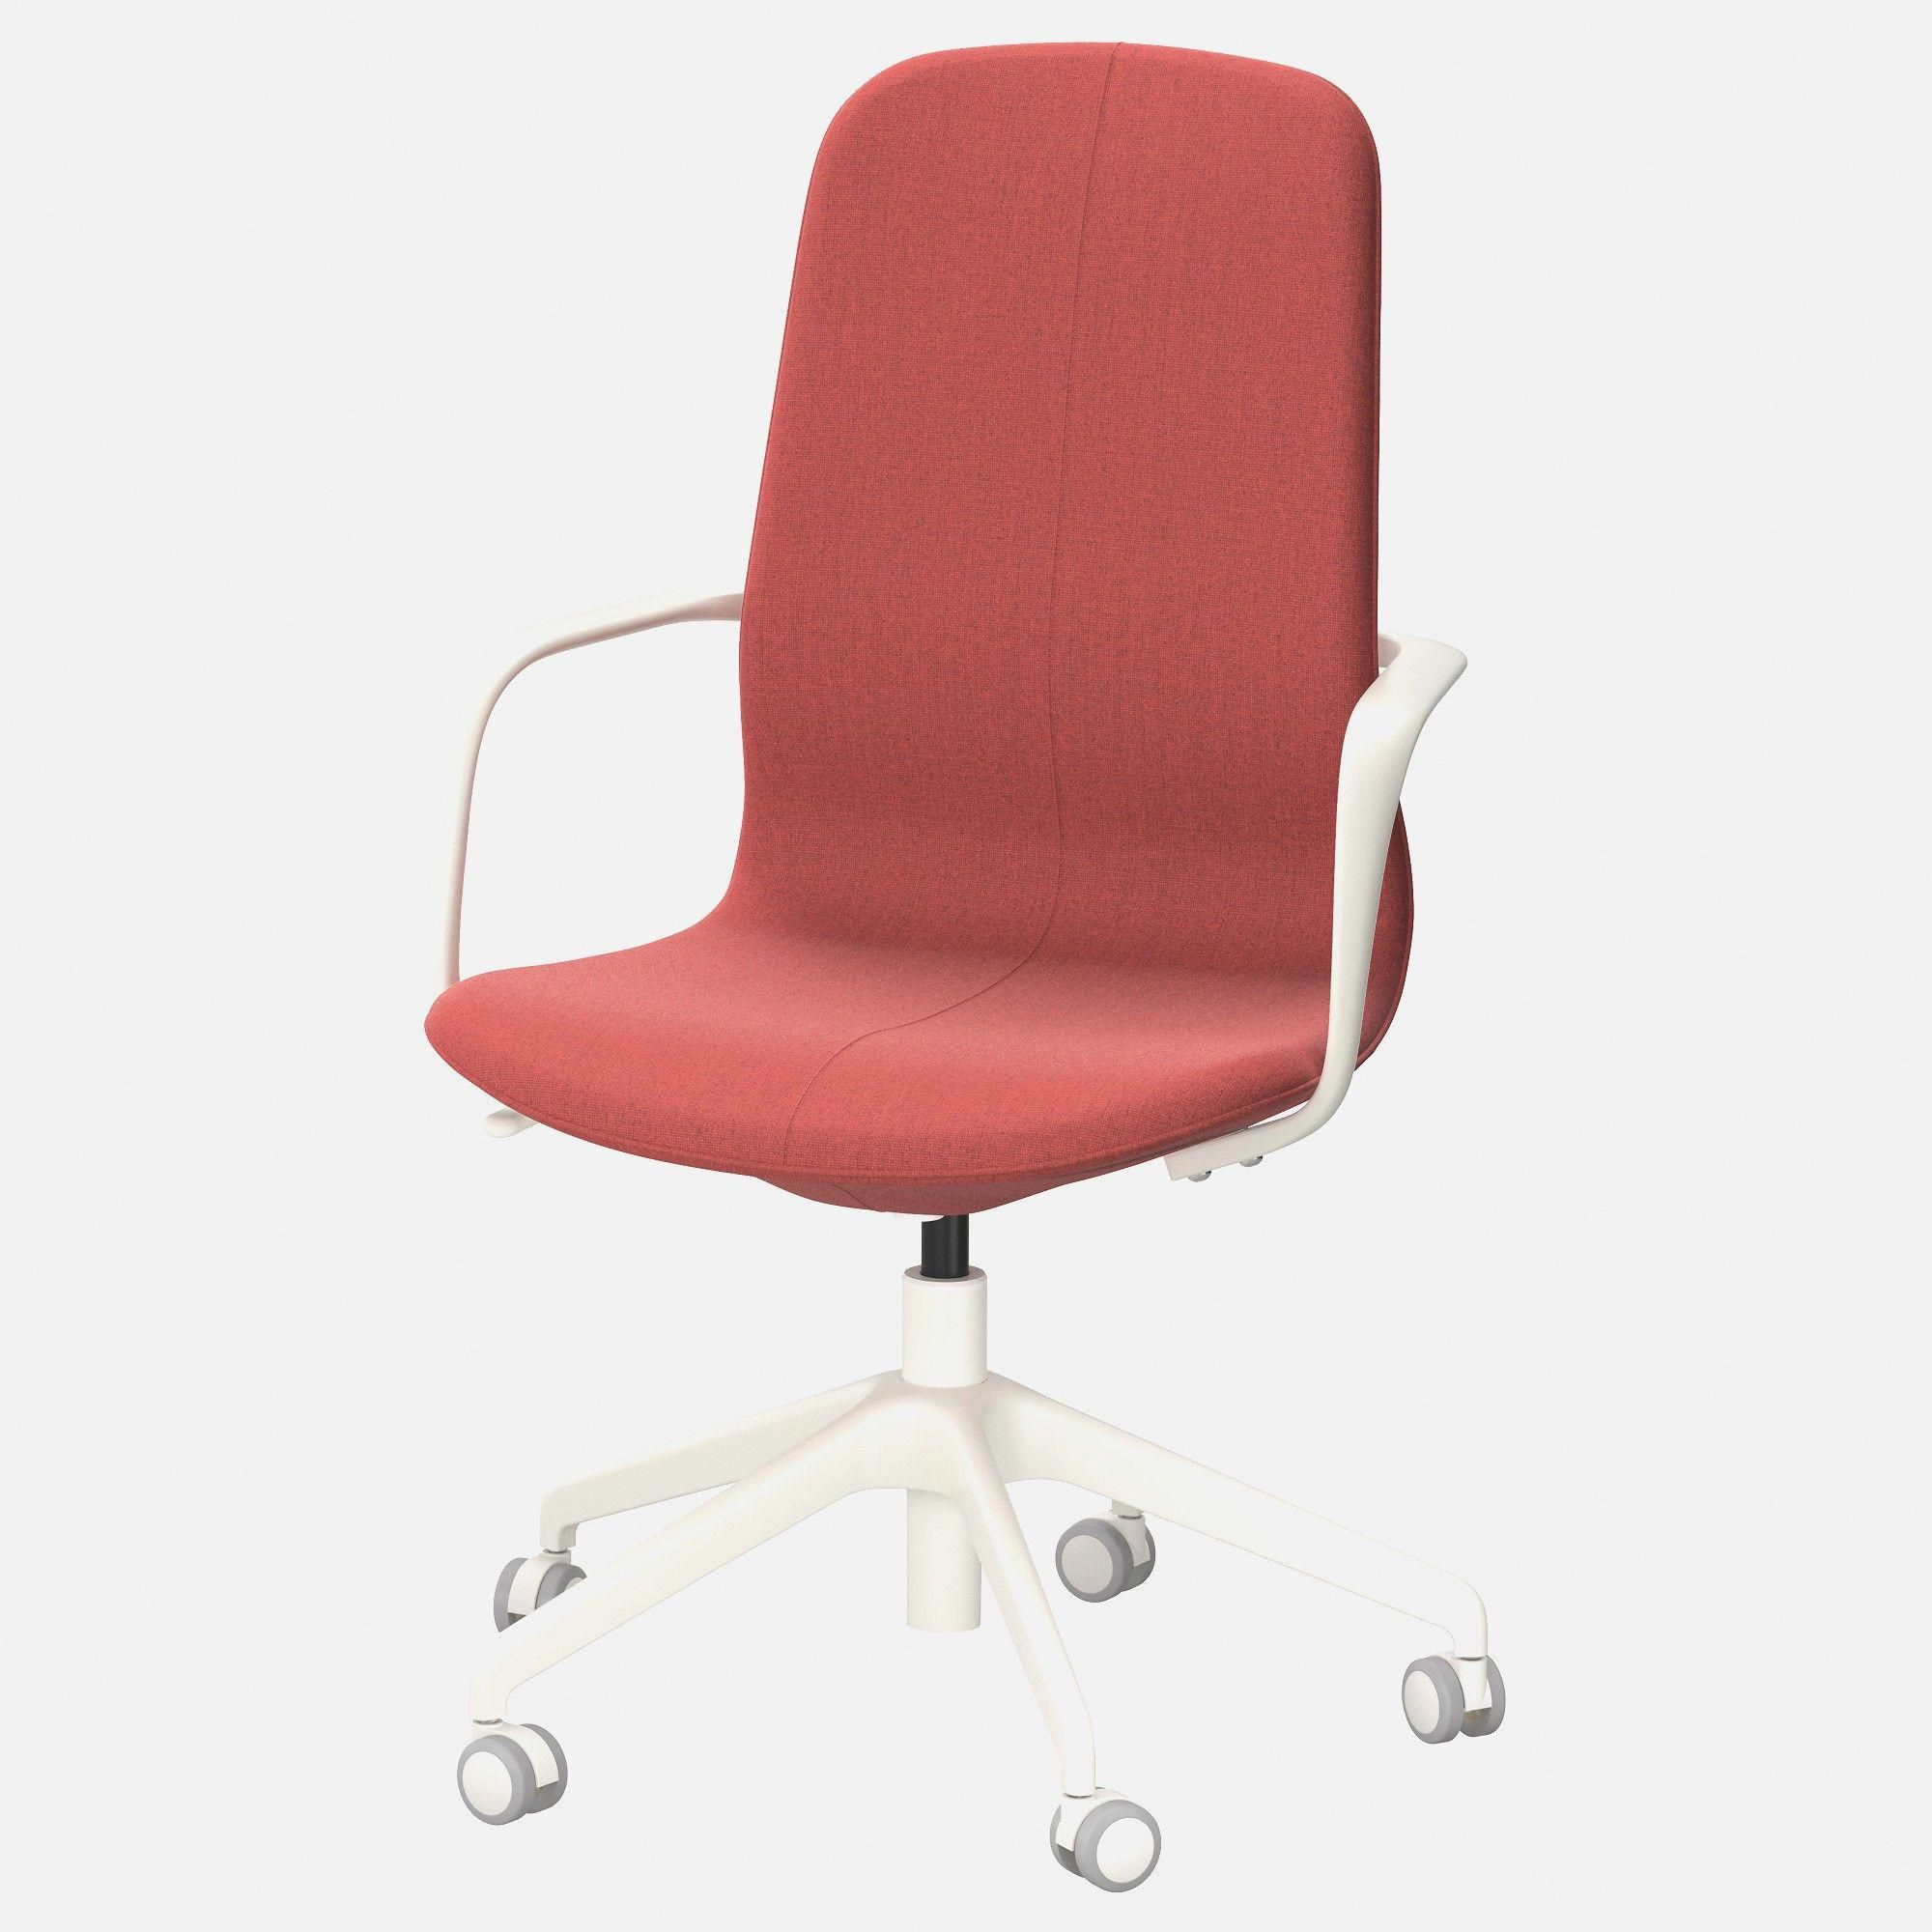 armless office chairs with wheels armless desk chair no wheels rh pinterest com Armless Upholstered Desk Chairs Upholstered Desk Chairs with Wheels